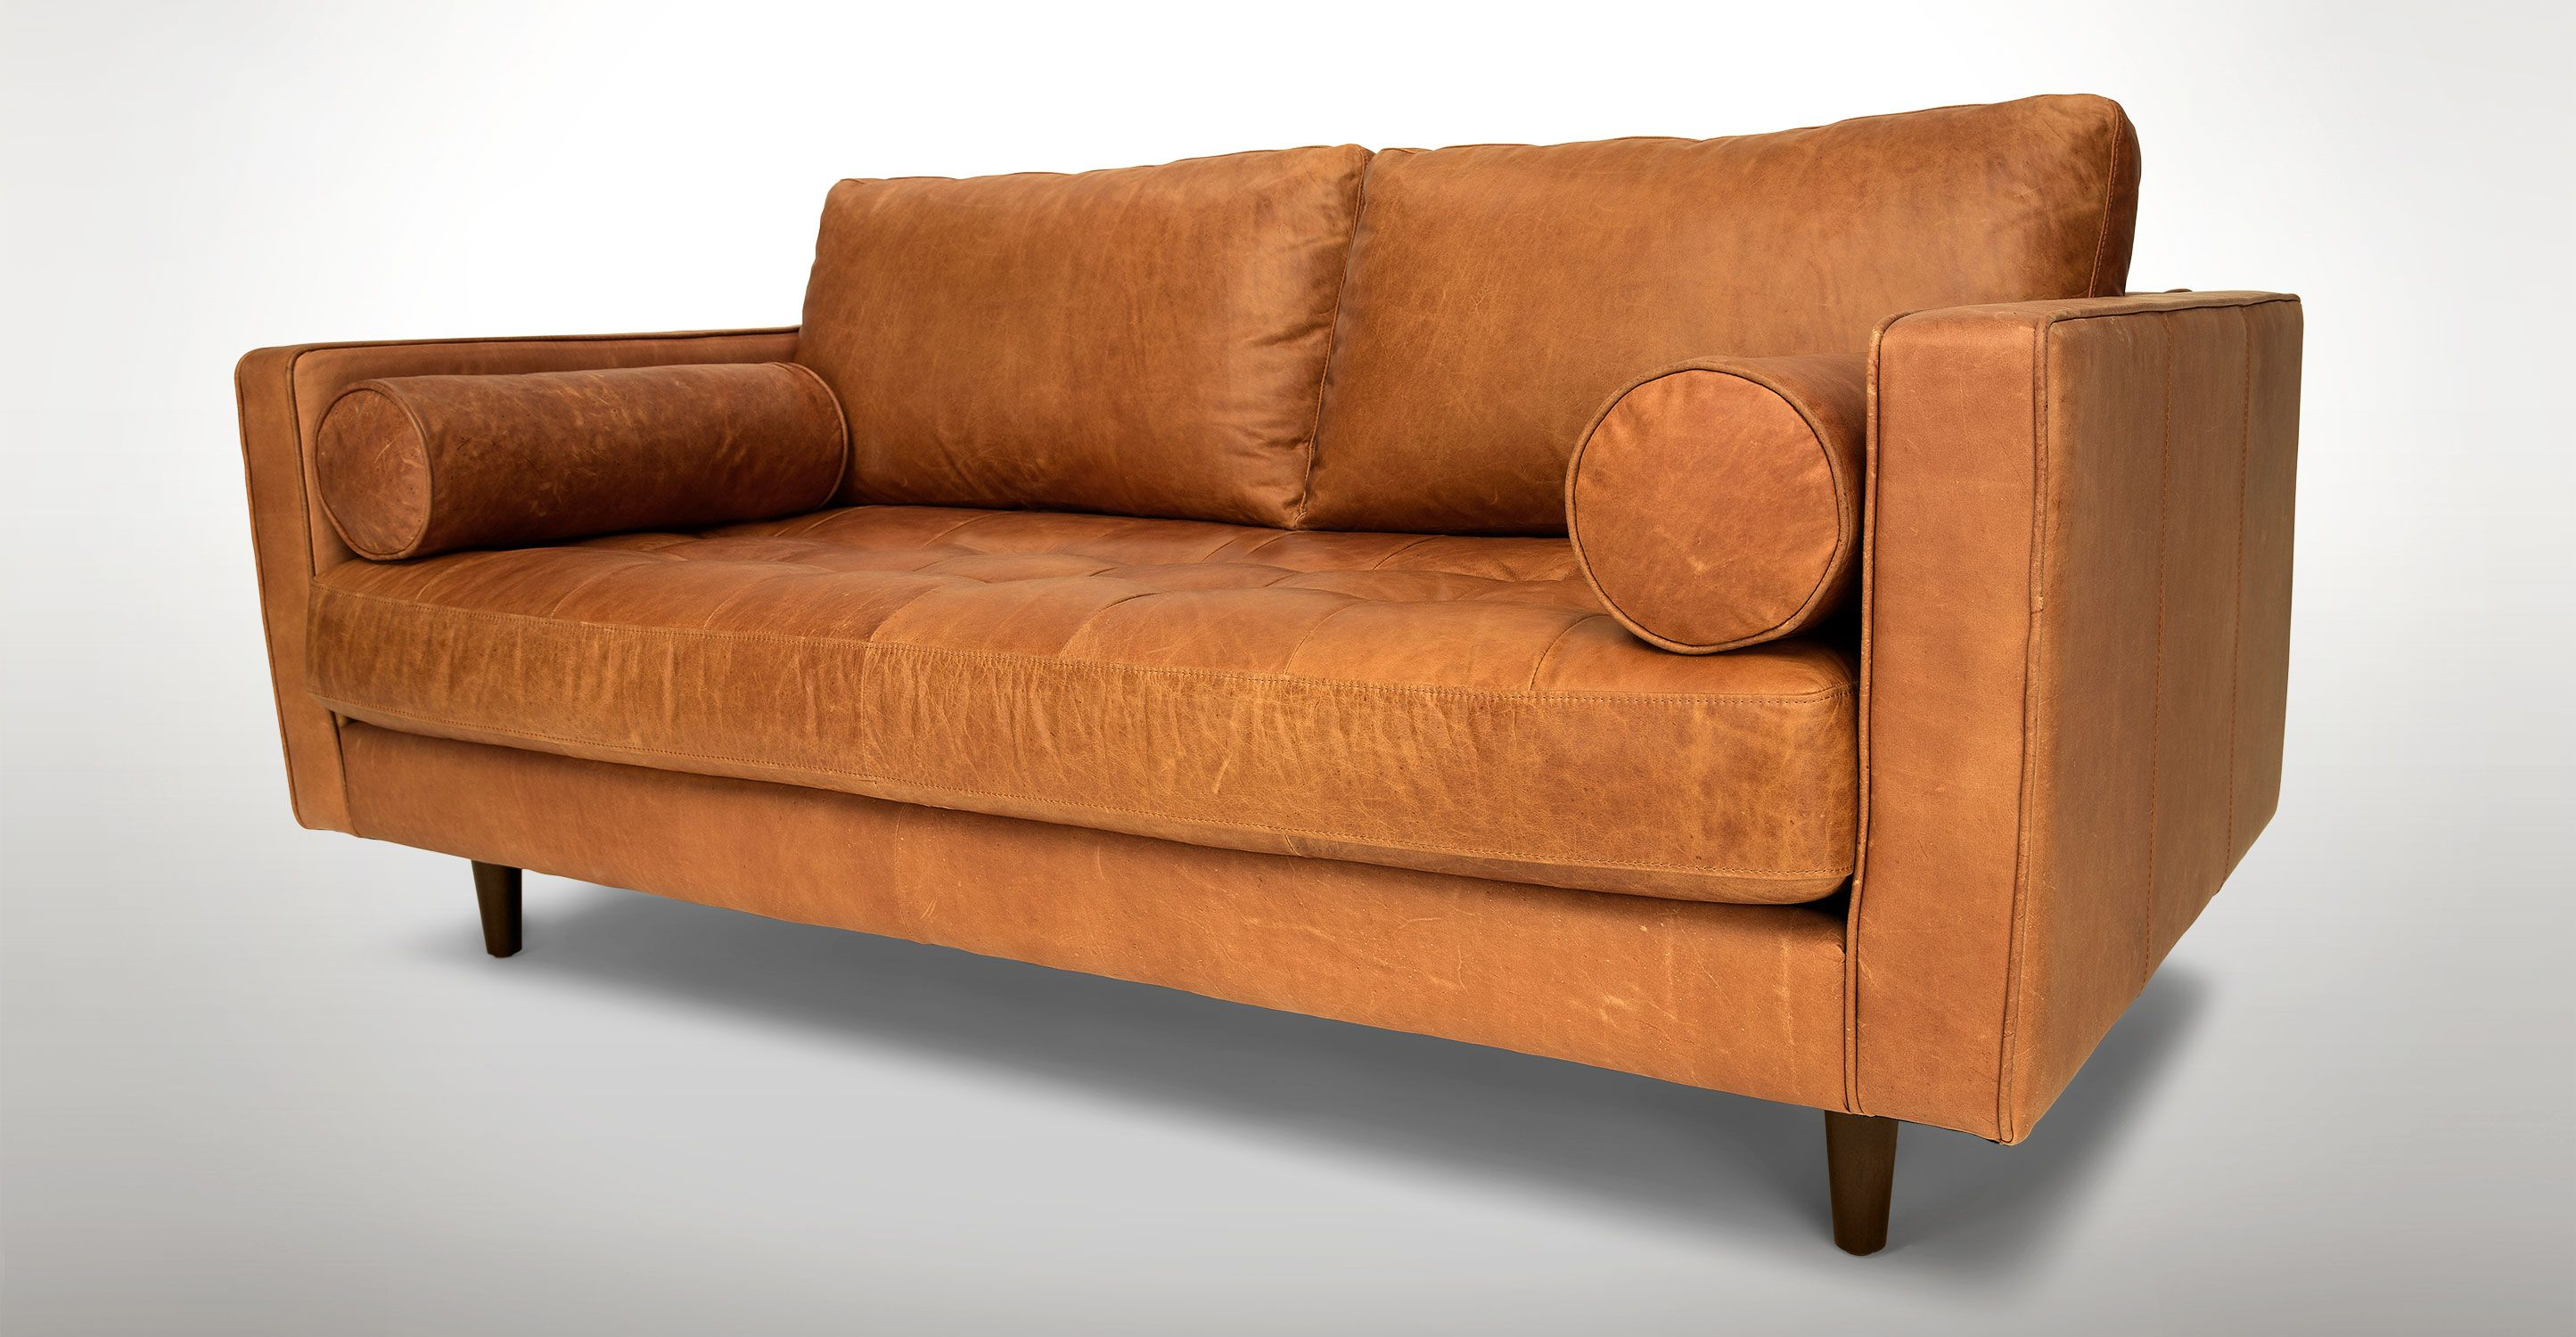 Sven Charme Tan 72 Quot Sofa Homely Small Bedroom